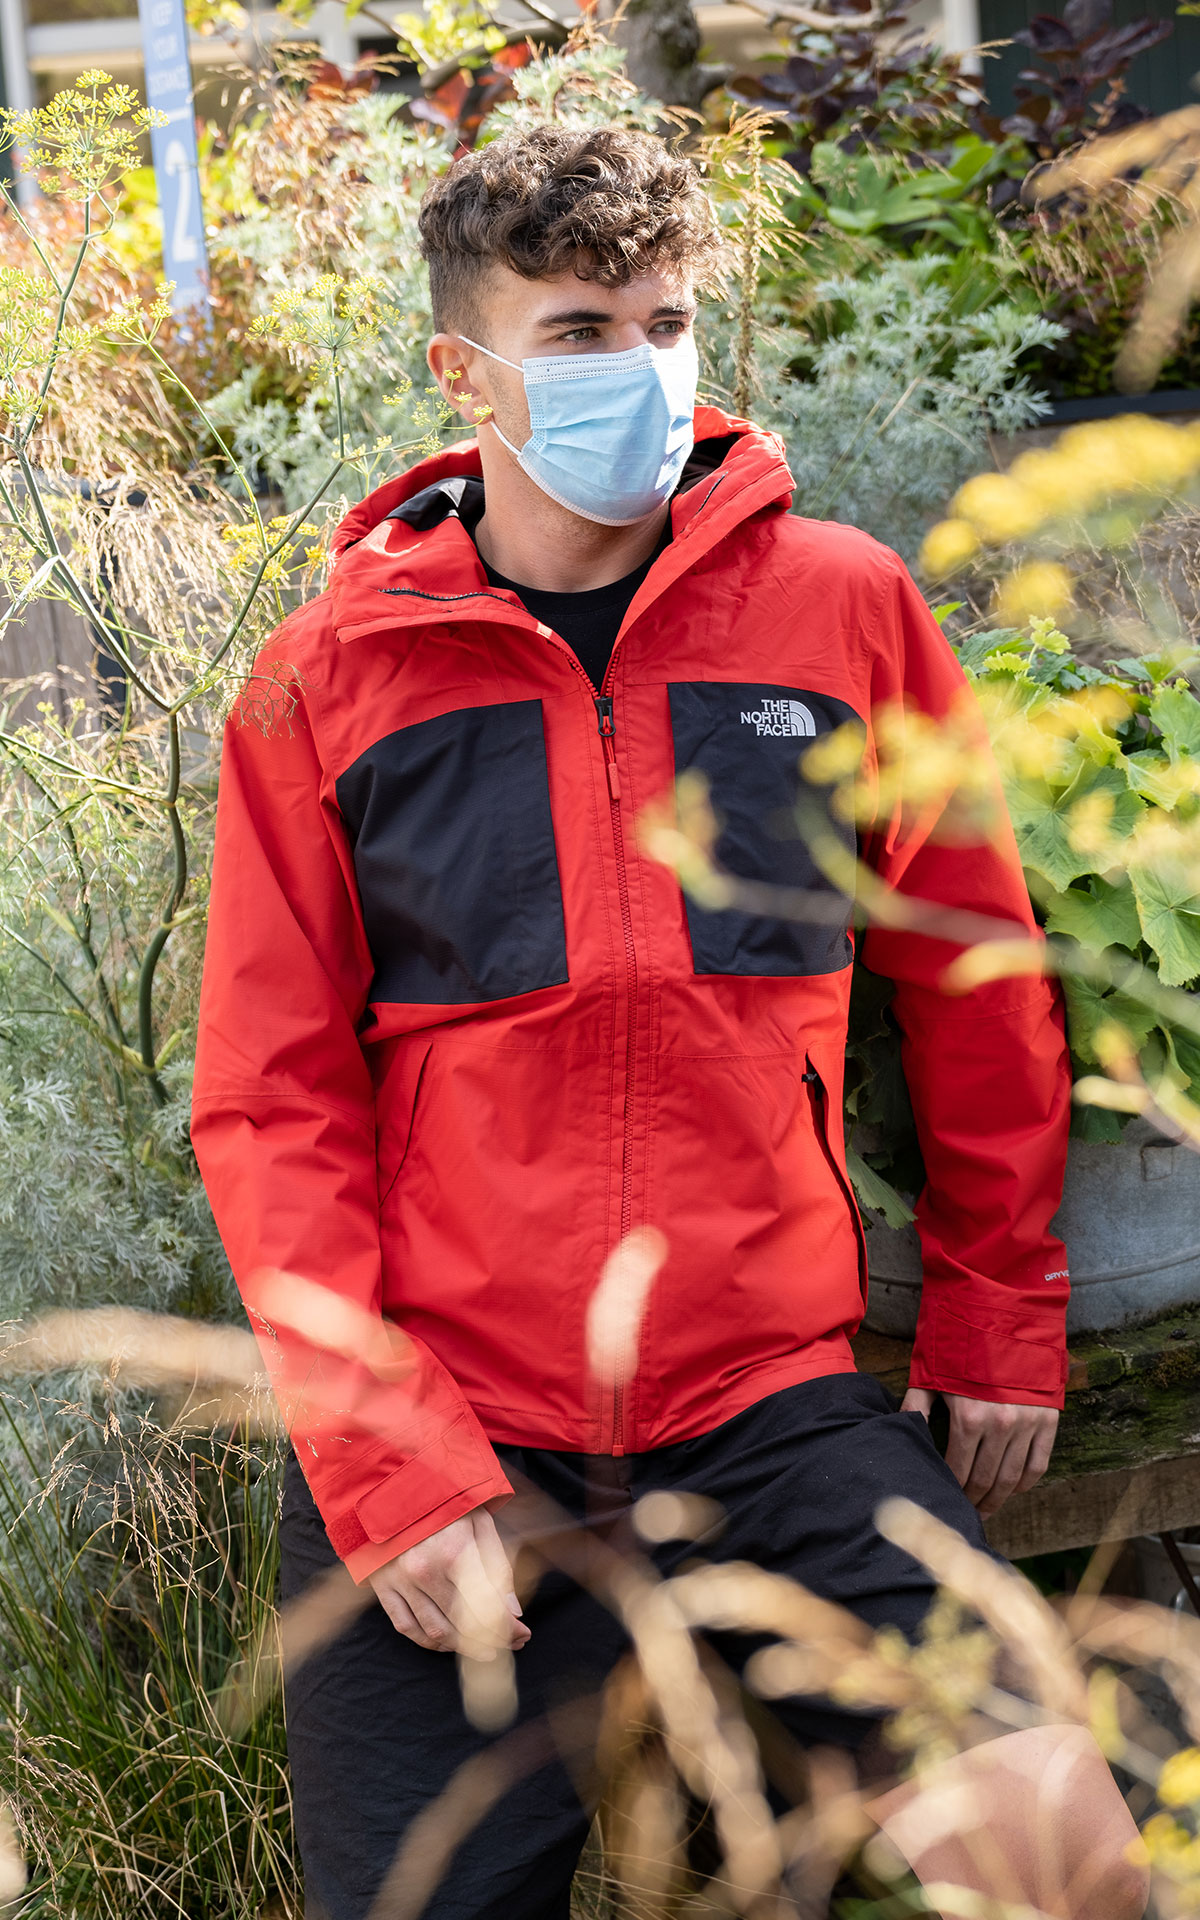 The North Face Purna jacket salsa red from Bicester Village